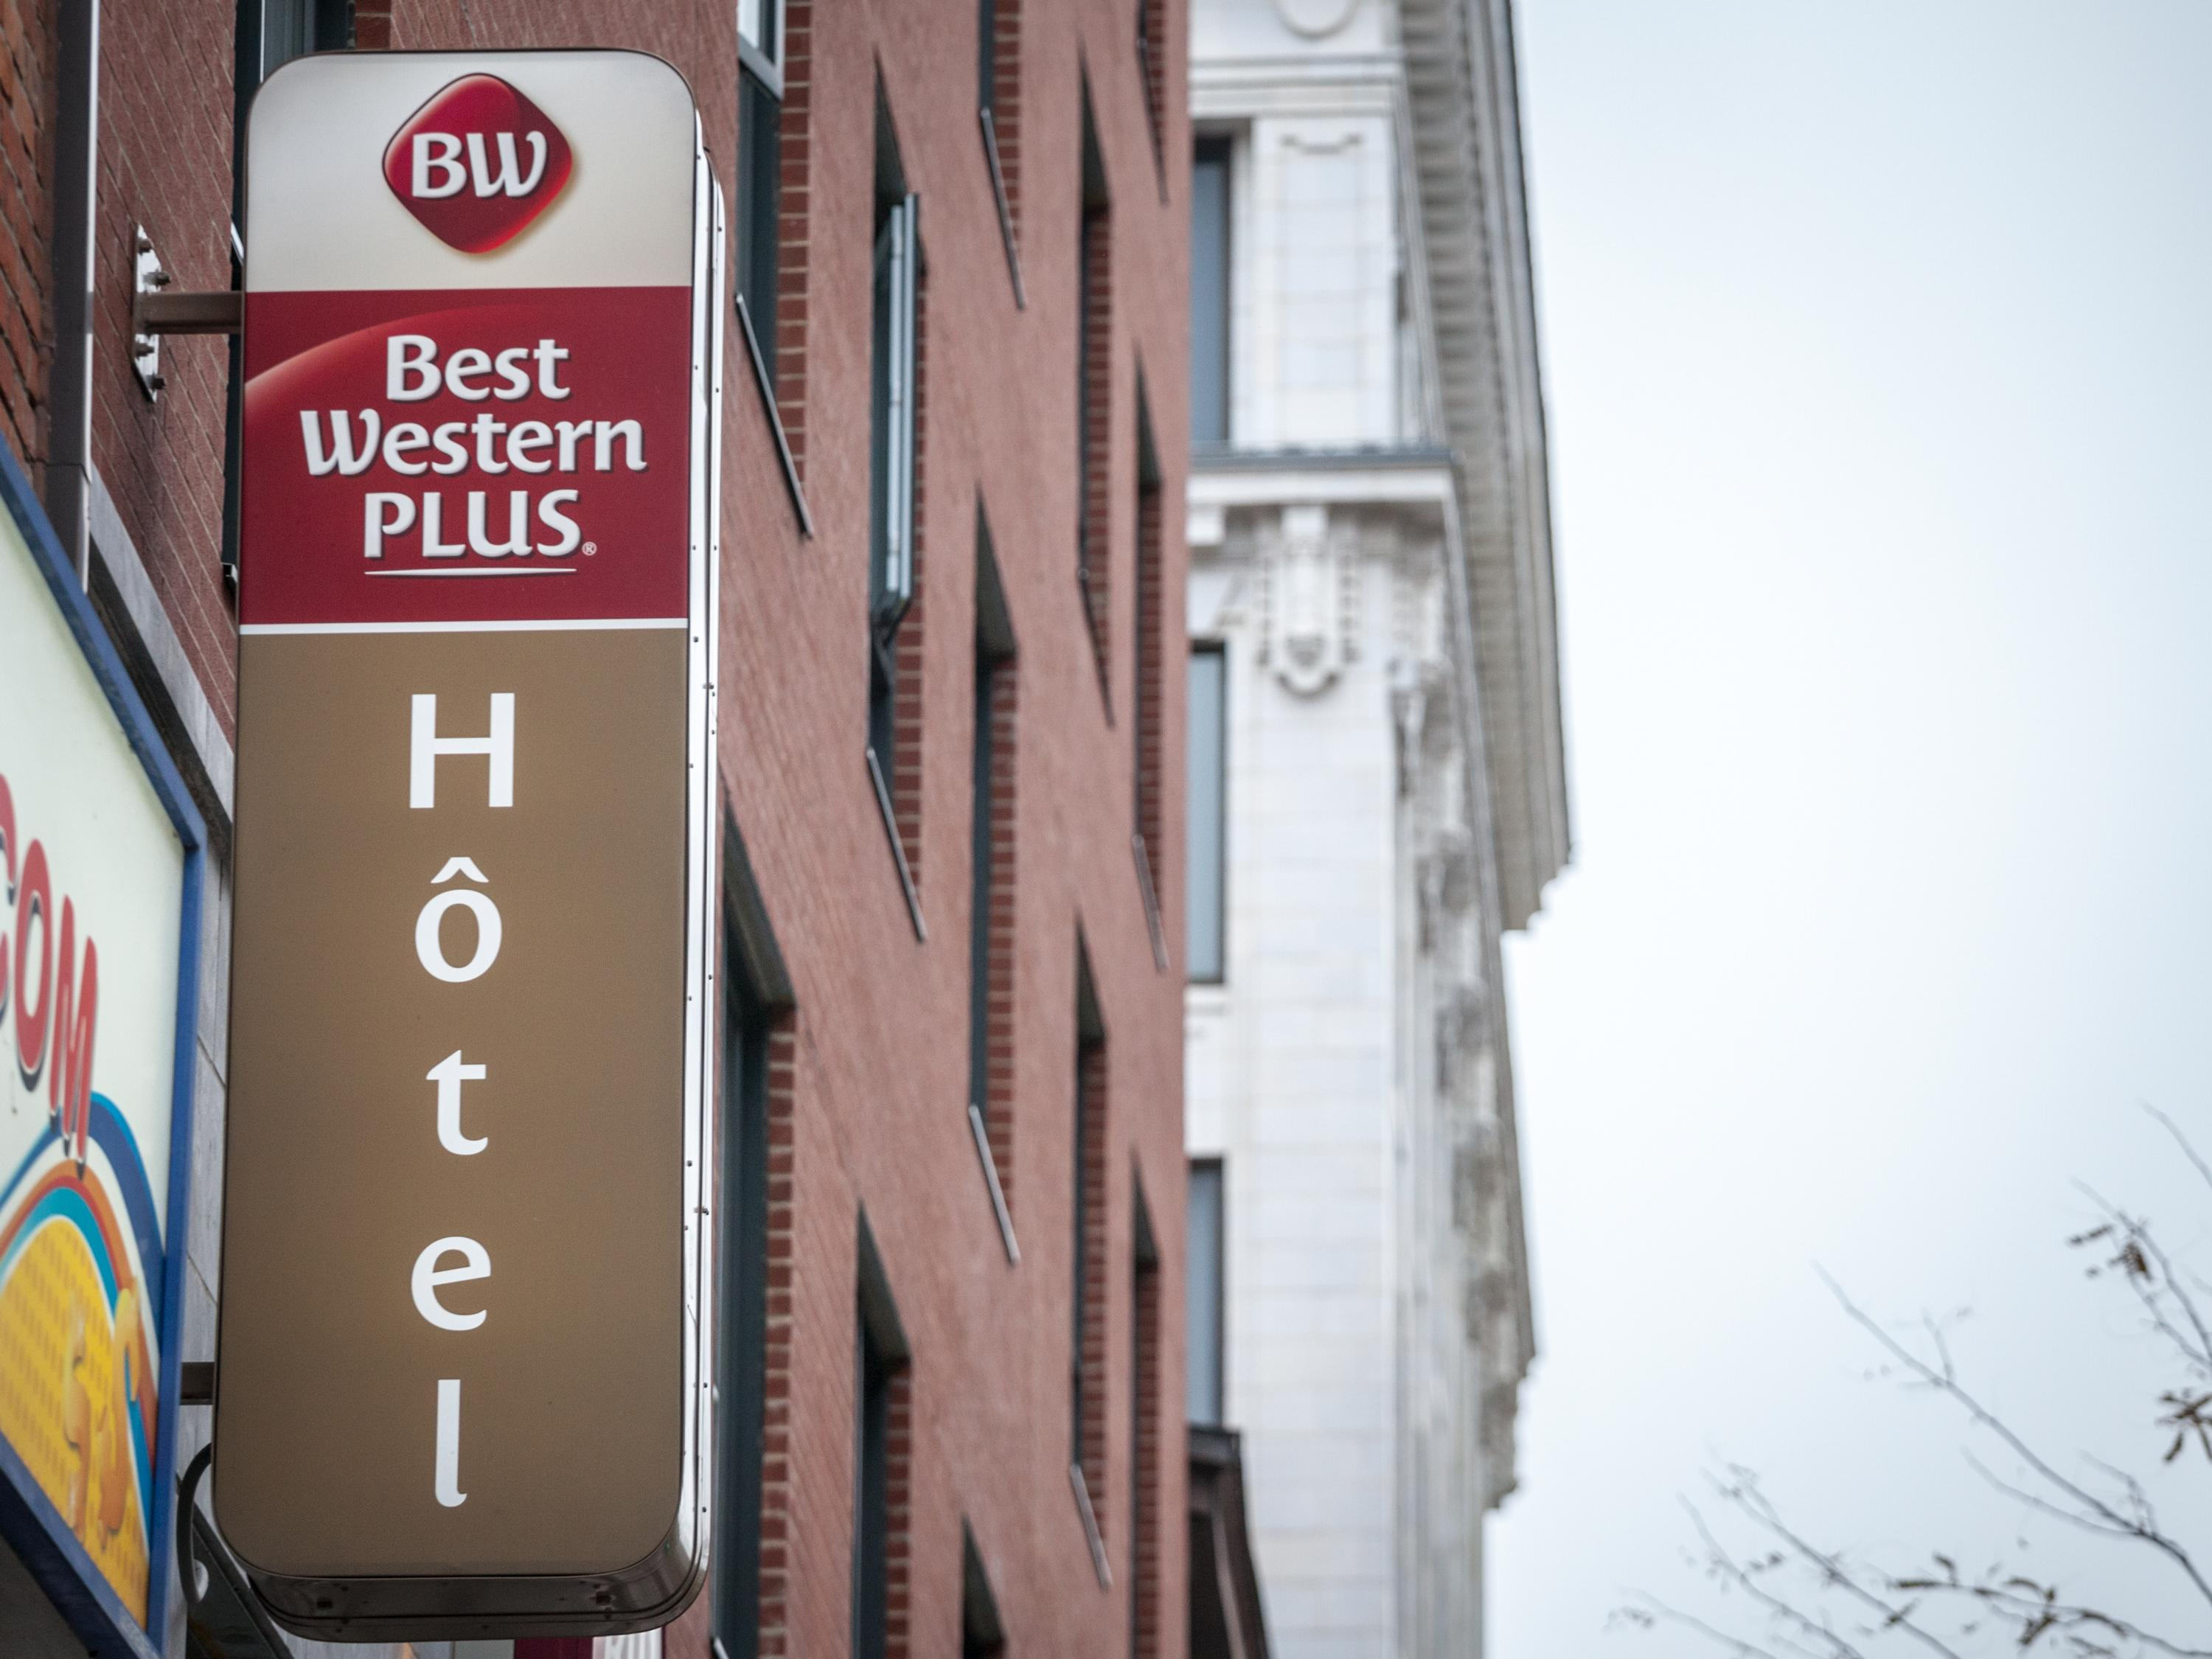 Best Western CEO says hotels need four times payroll cost to pay essential bills